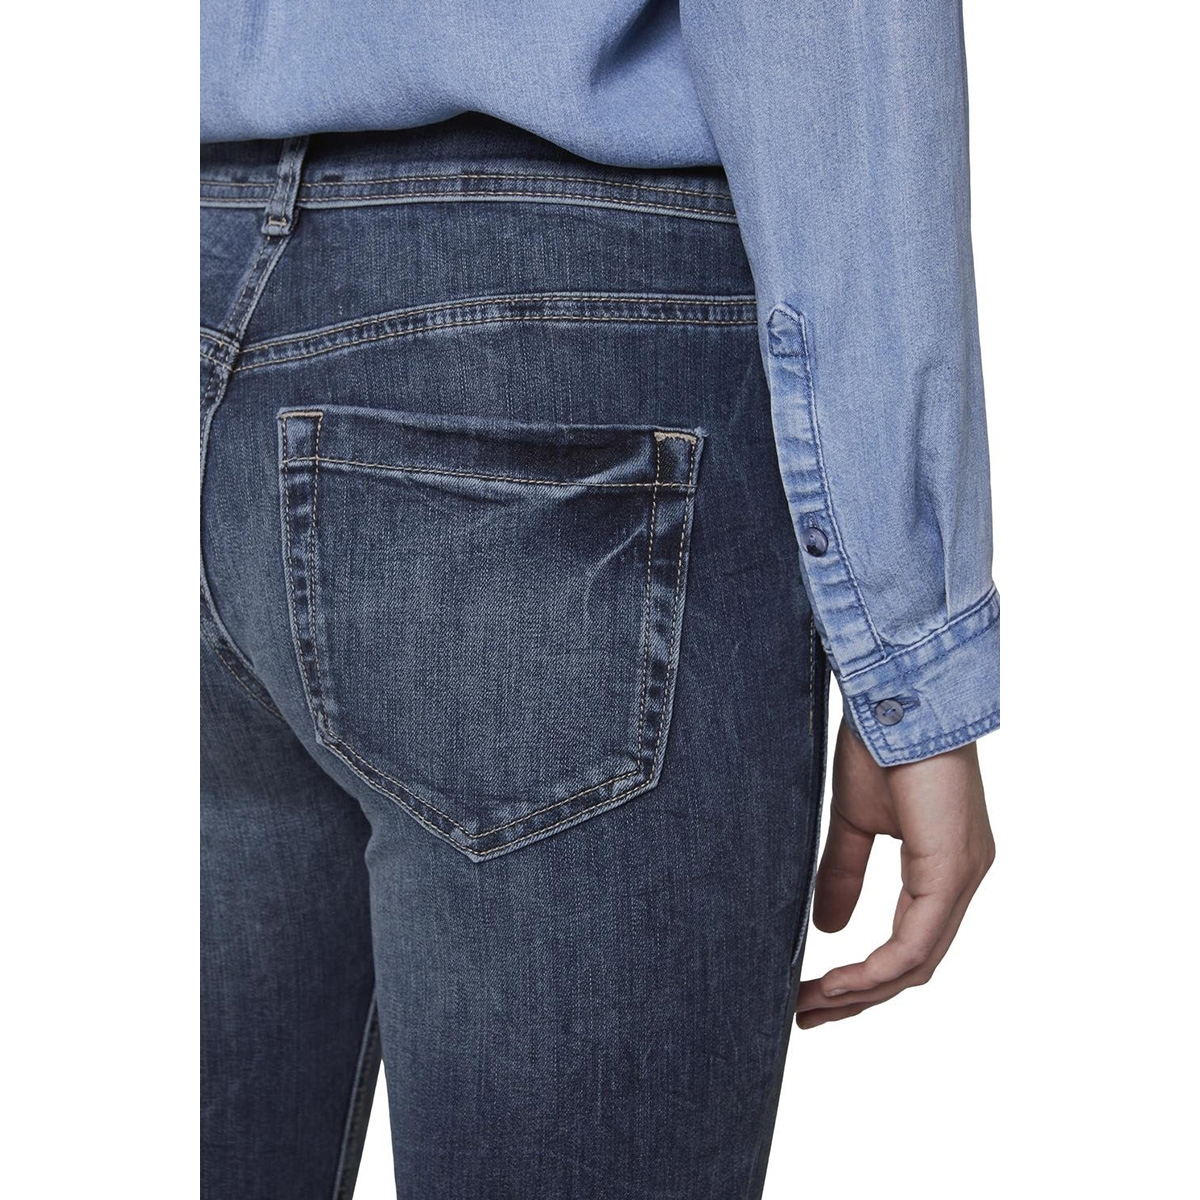 kate slim capri jeans 1016817xx70 tom tailor jeans 10125